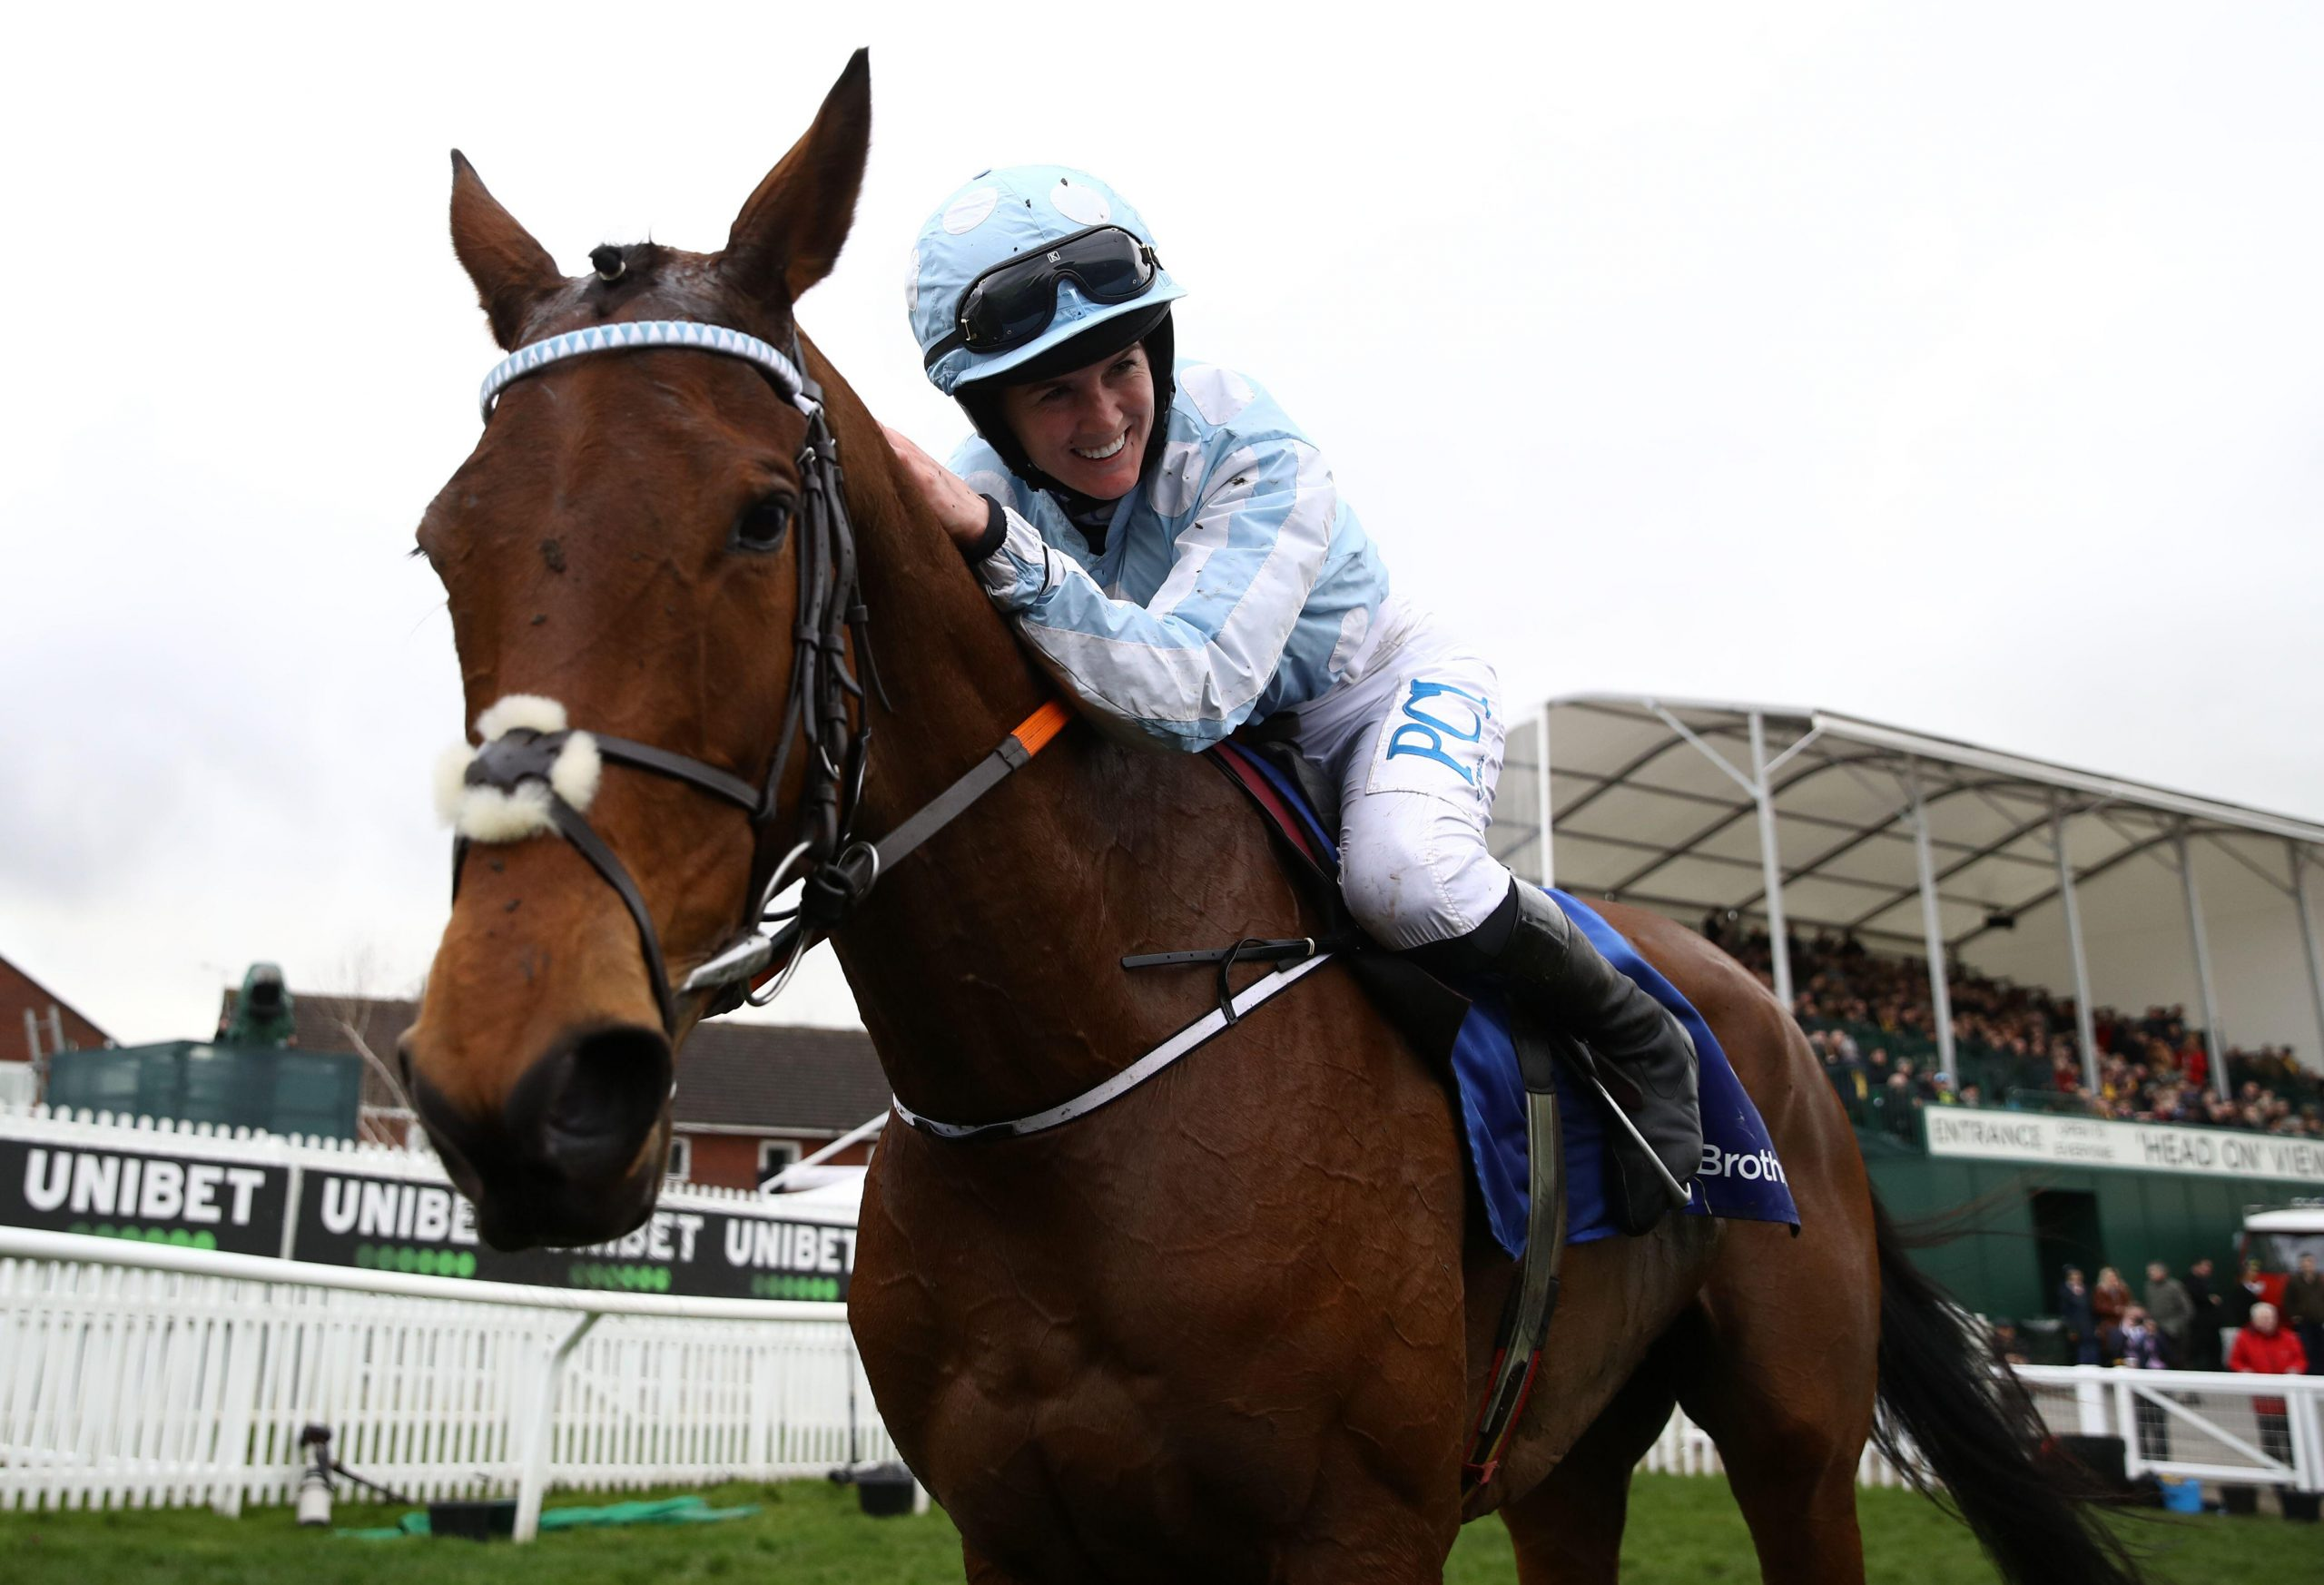 Honeysuckle ridden by Rachael Blackmore following victory in the Close Brothers Mares' Hurdle on day one of the Cheltenham Festival at Cheltenham Racecourse, Cheltenham.